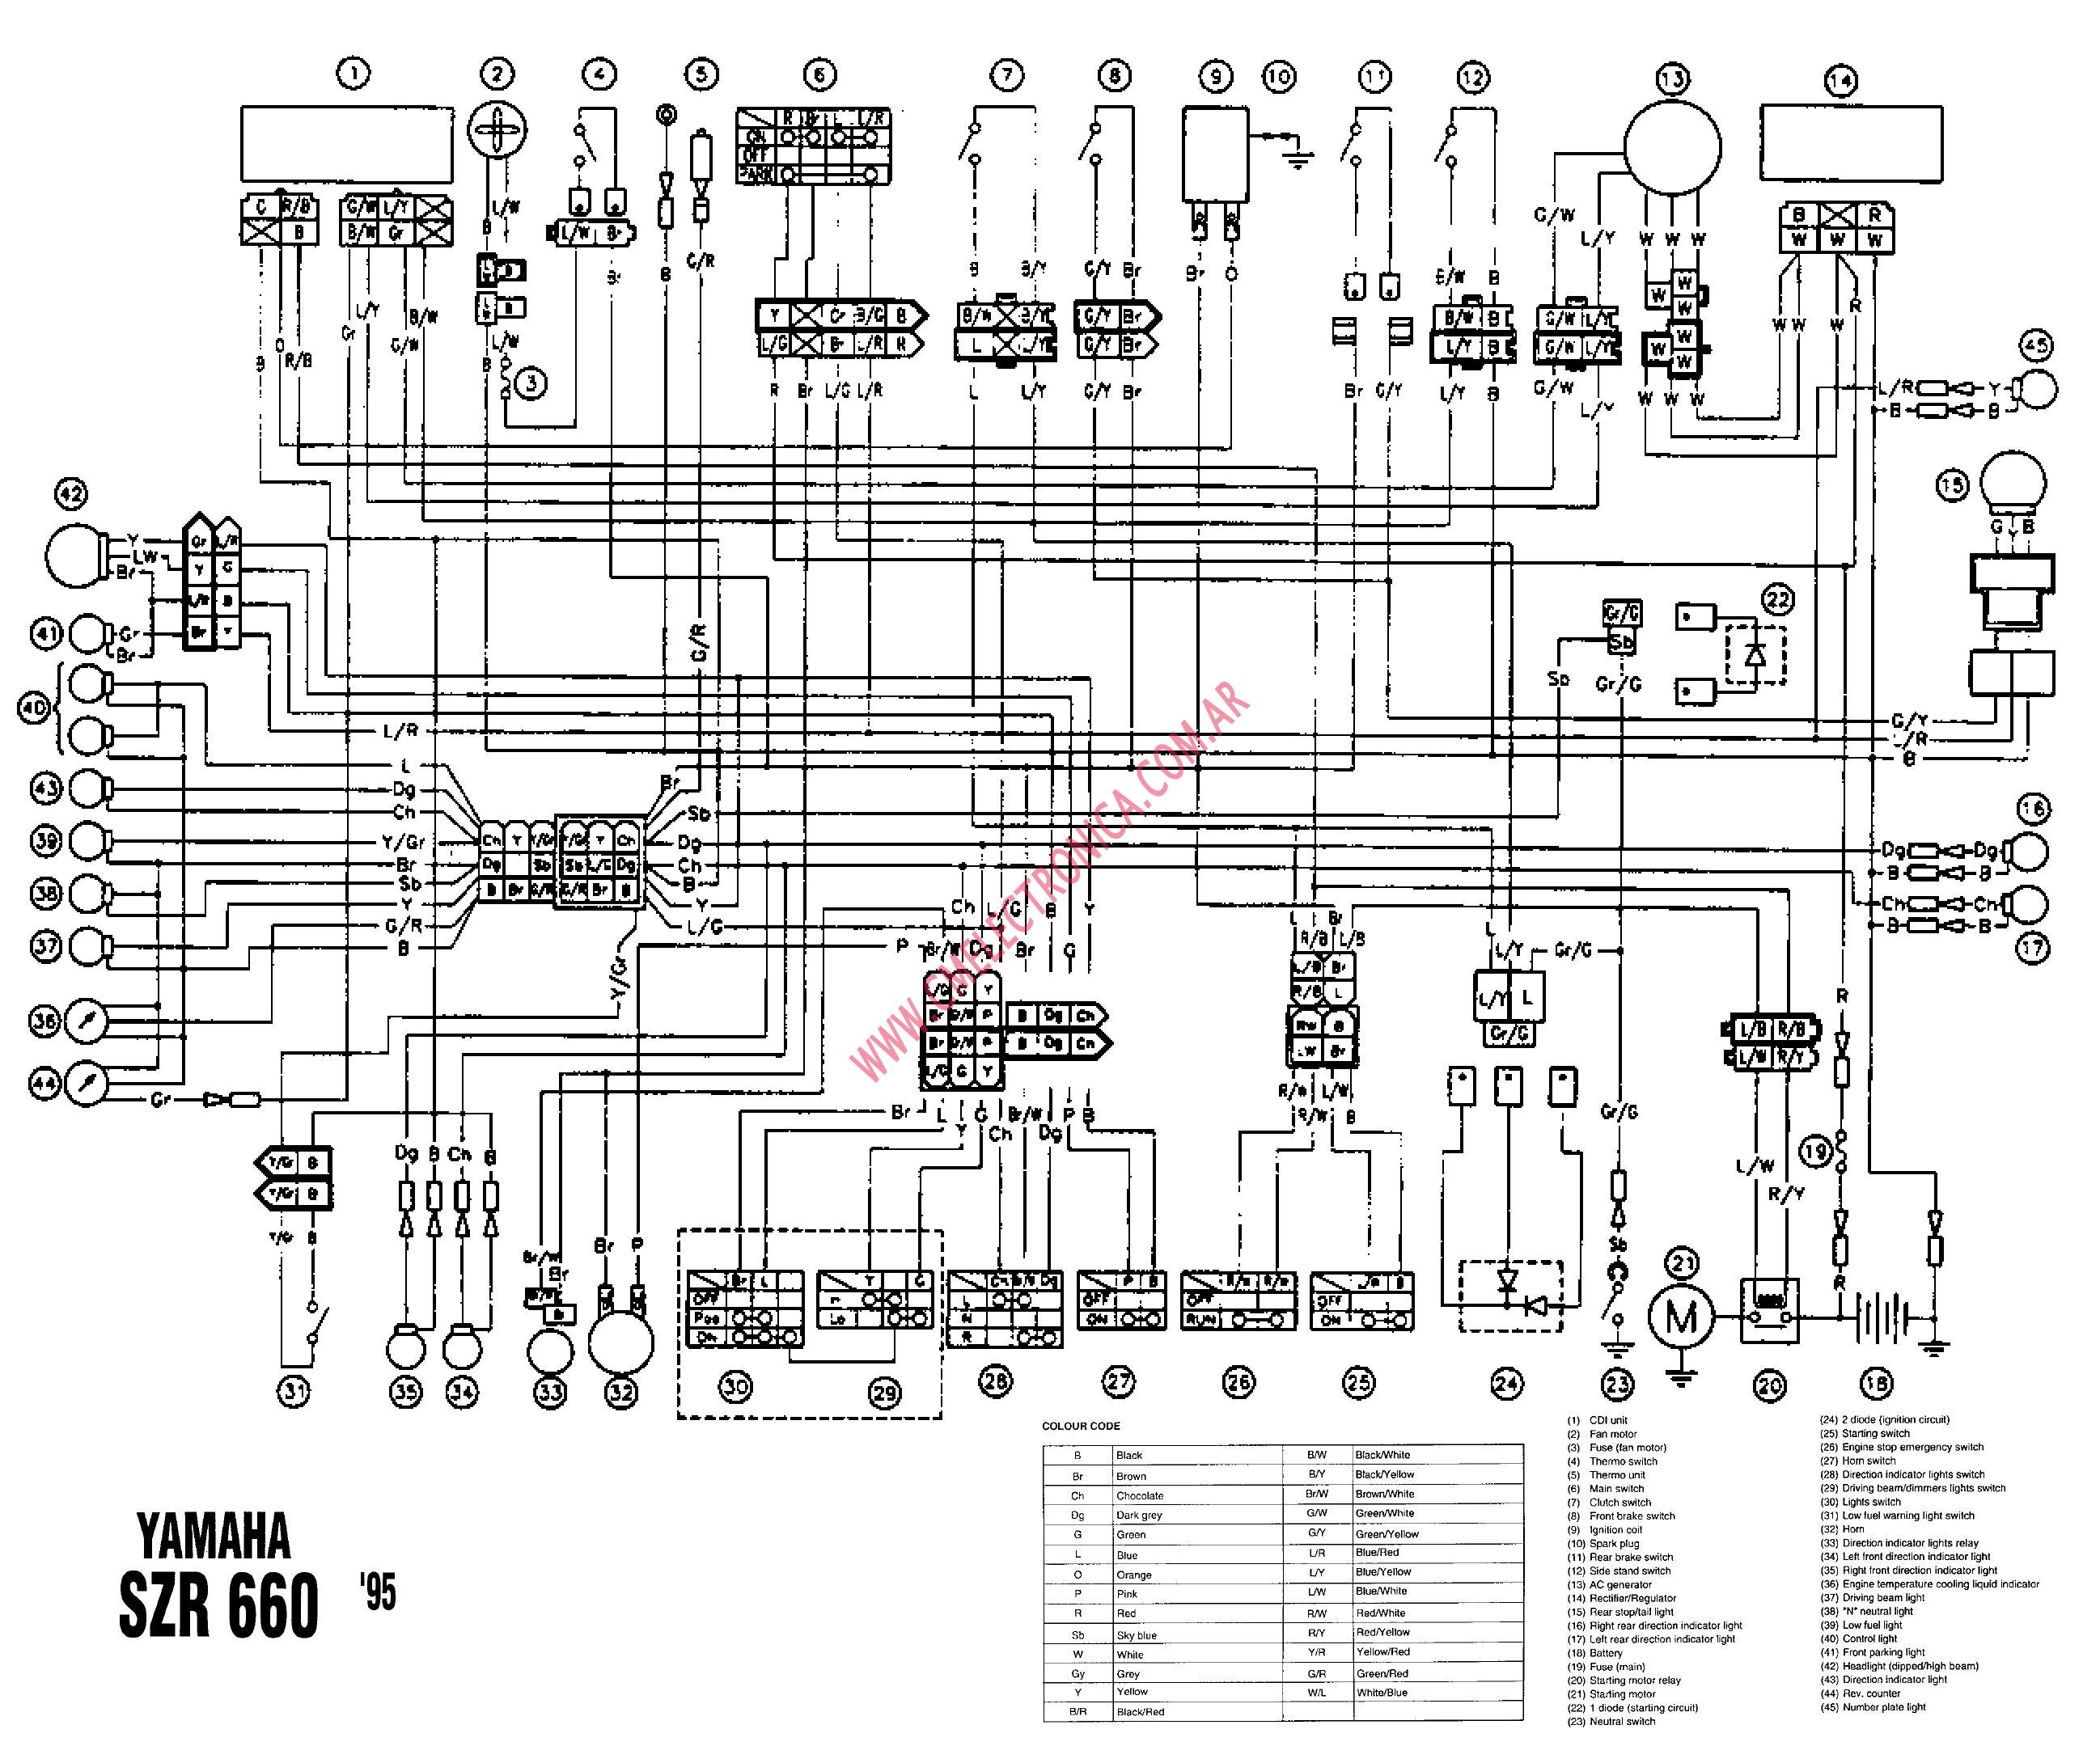 Wiring Diagram For Yamaha Raptor • Wiring Diagram For Free